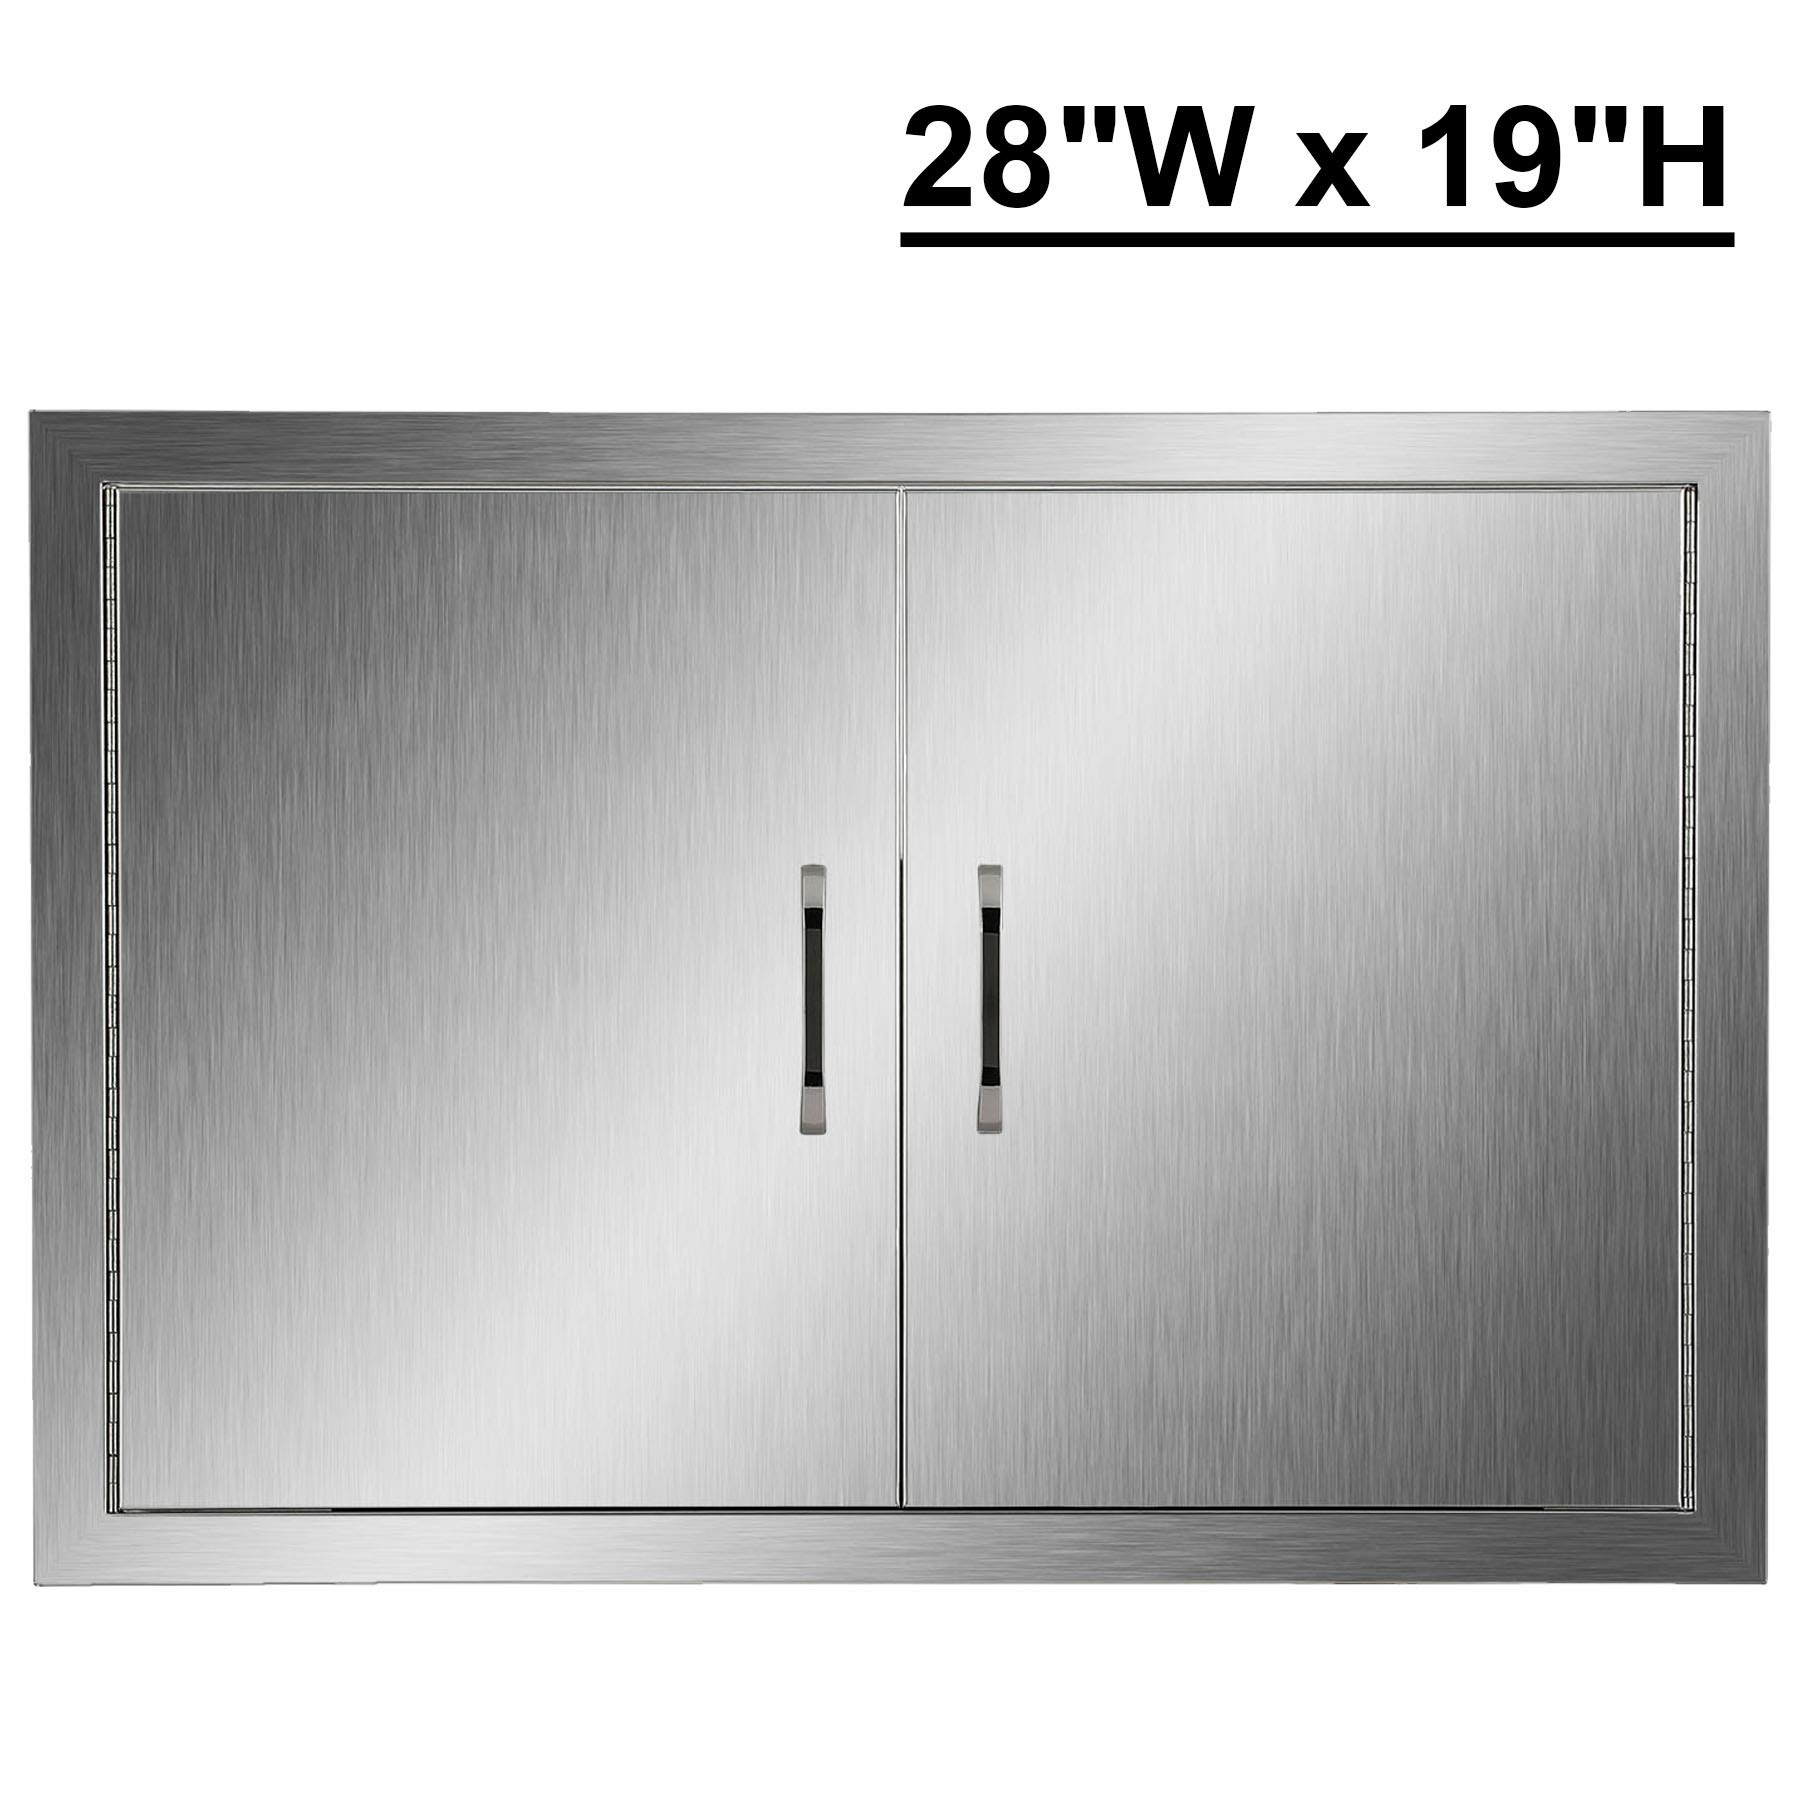 CO-Z Outdoor Kitchen Doors, 28'' W x 19'' H Double BBQ Access Doors for Outdoor Summer Kitchen, 304 Stainless Steel Commercial BBQ Island, Grilling Station, Outside Cabinet, Barbeque Grill, Built-in